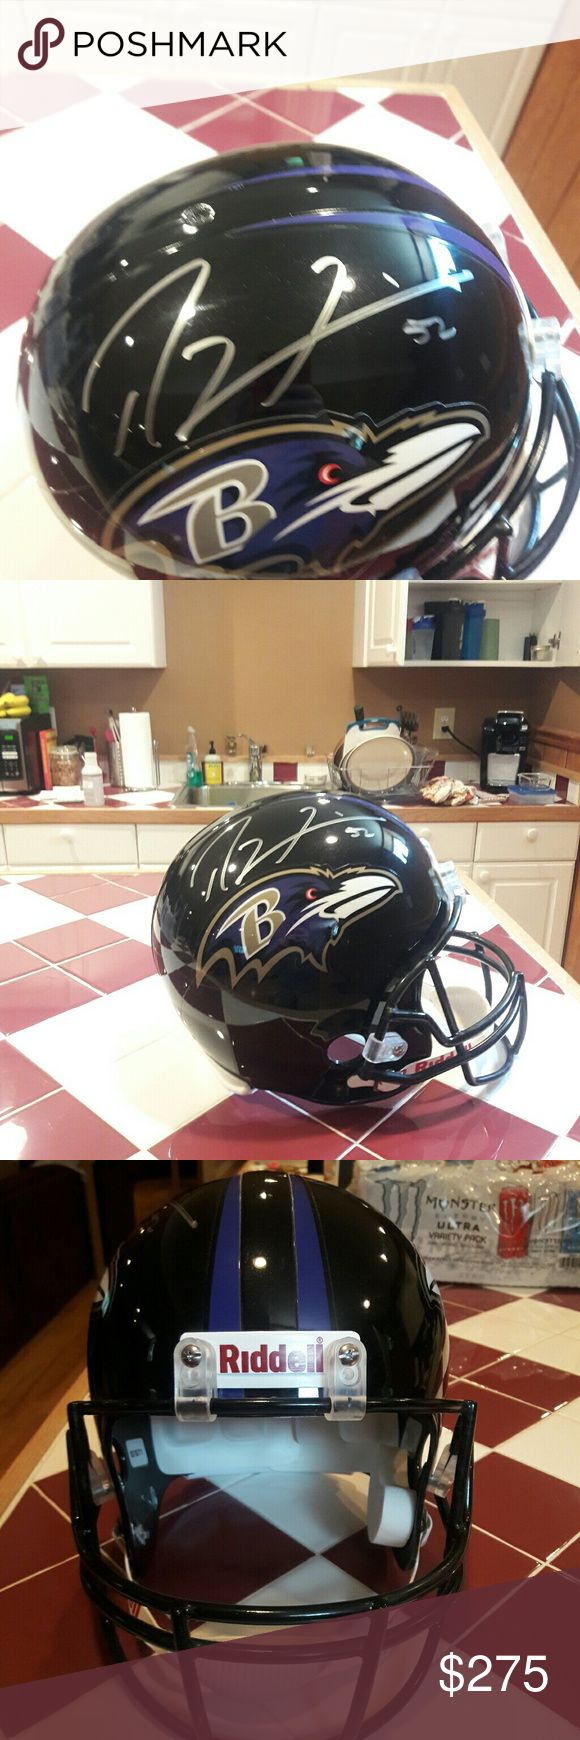 Signed  Ravens Ray Lewis #52 helmet This signed Ravens replica helmet is signed by Ray Lewis during his last season in the NFL league. Perfect as a decoration or any sports loving fan. Makr me N offer randell Accessories Hats